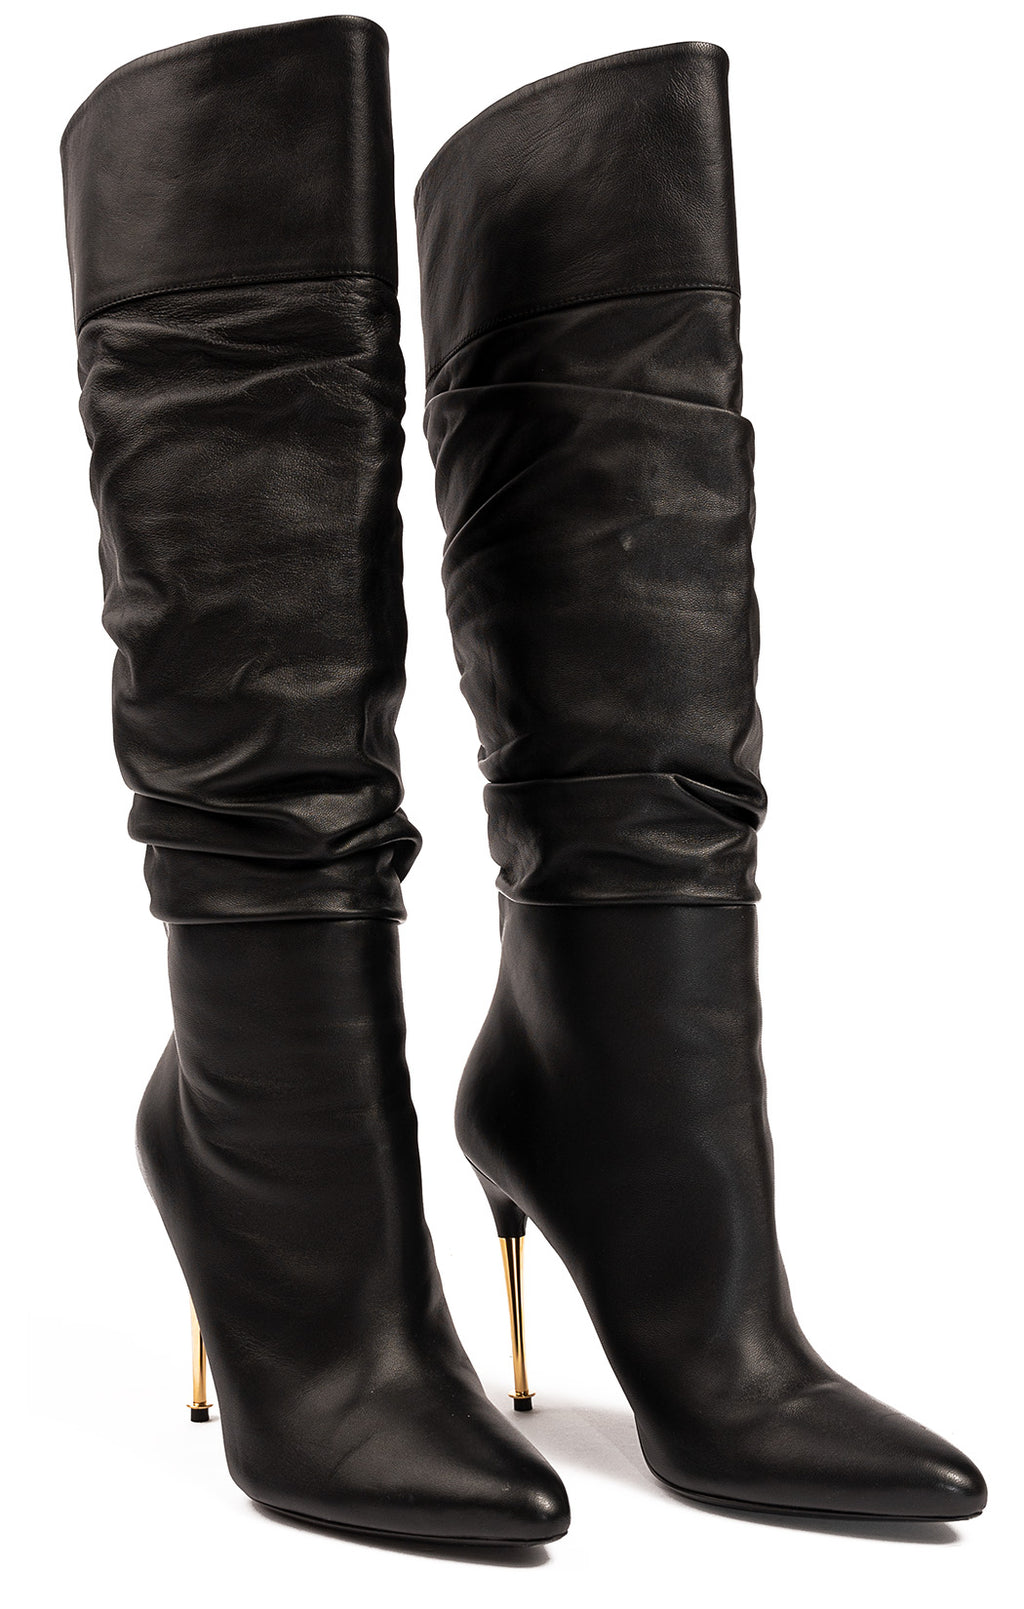 "Black leather boots with gold 4.25"" heel"